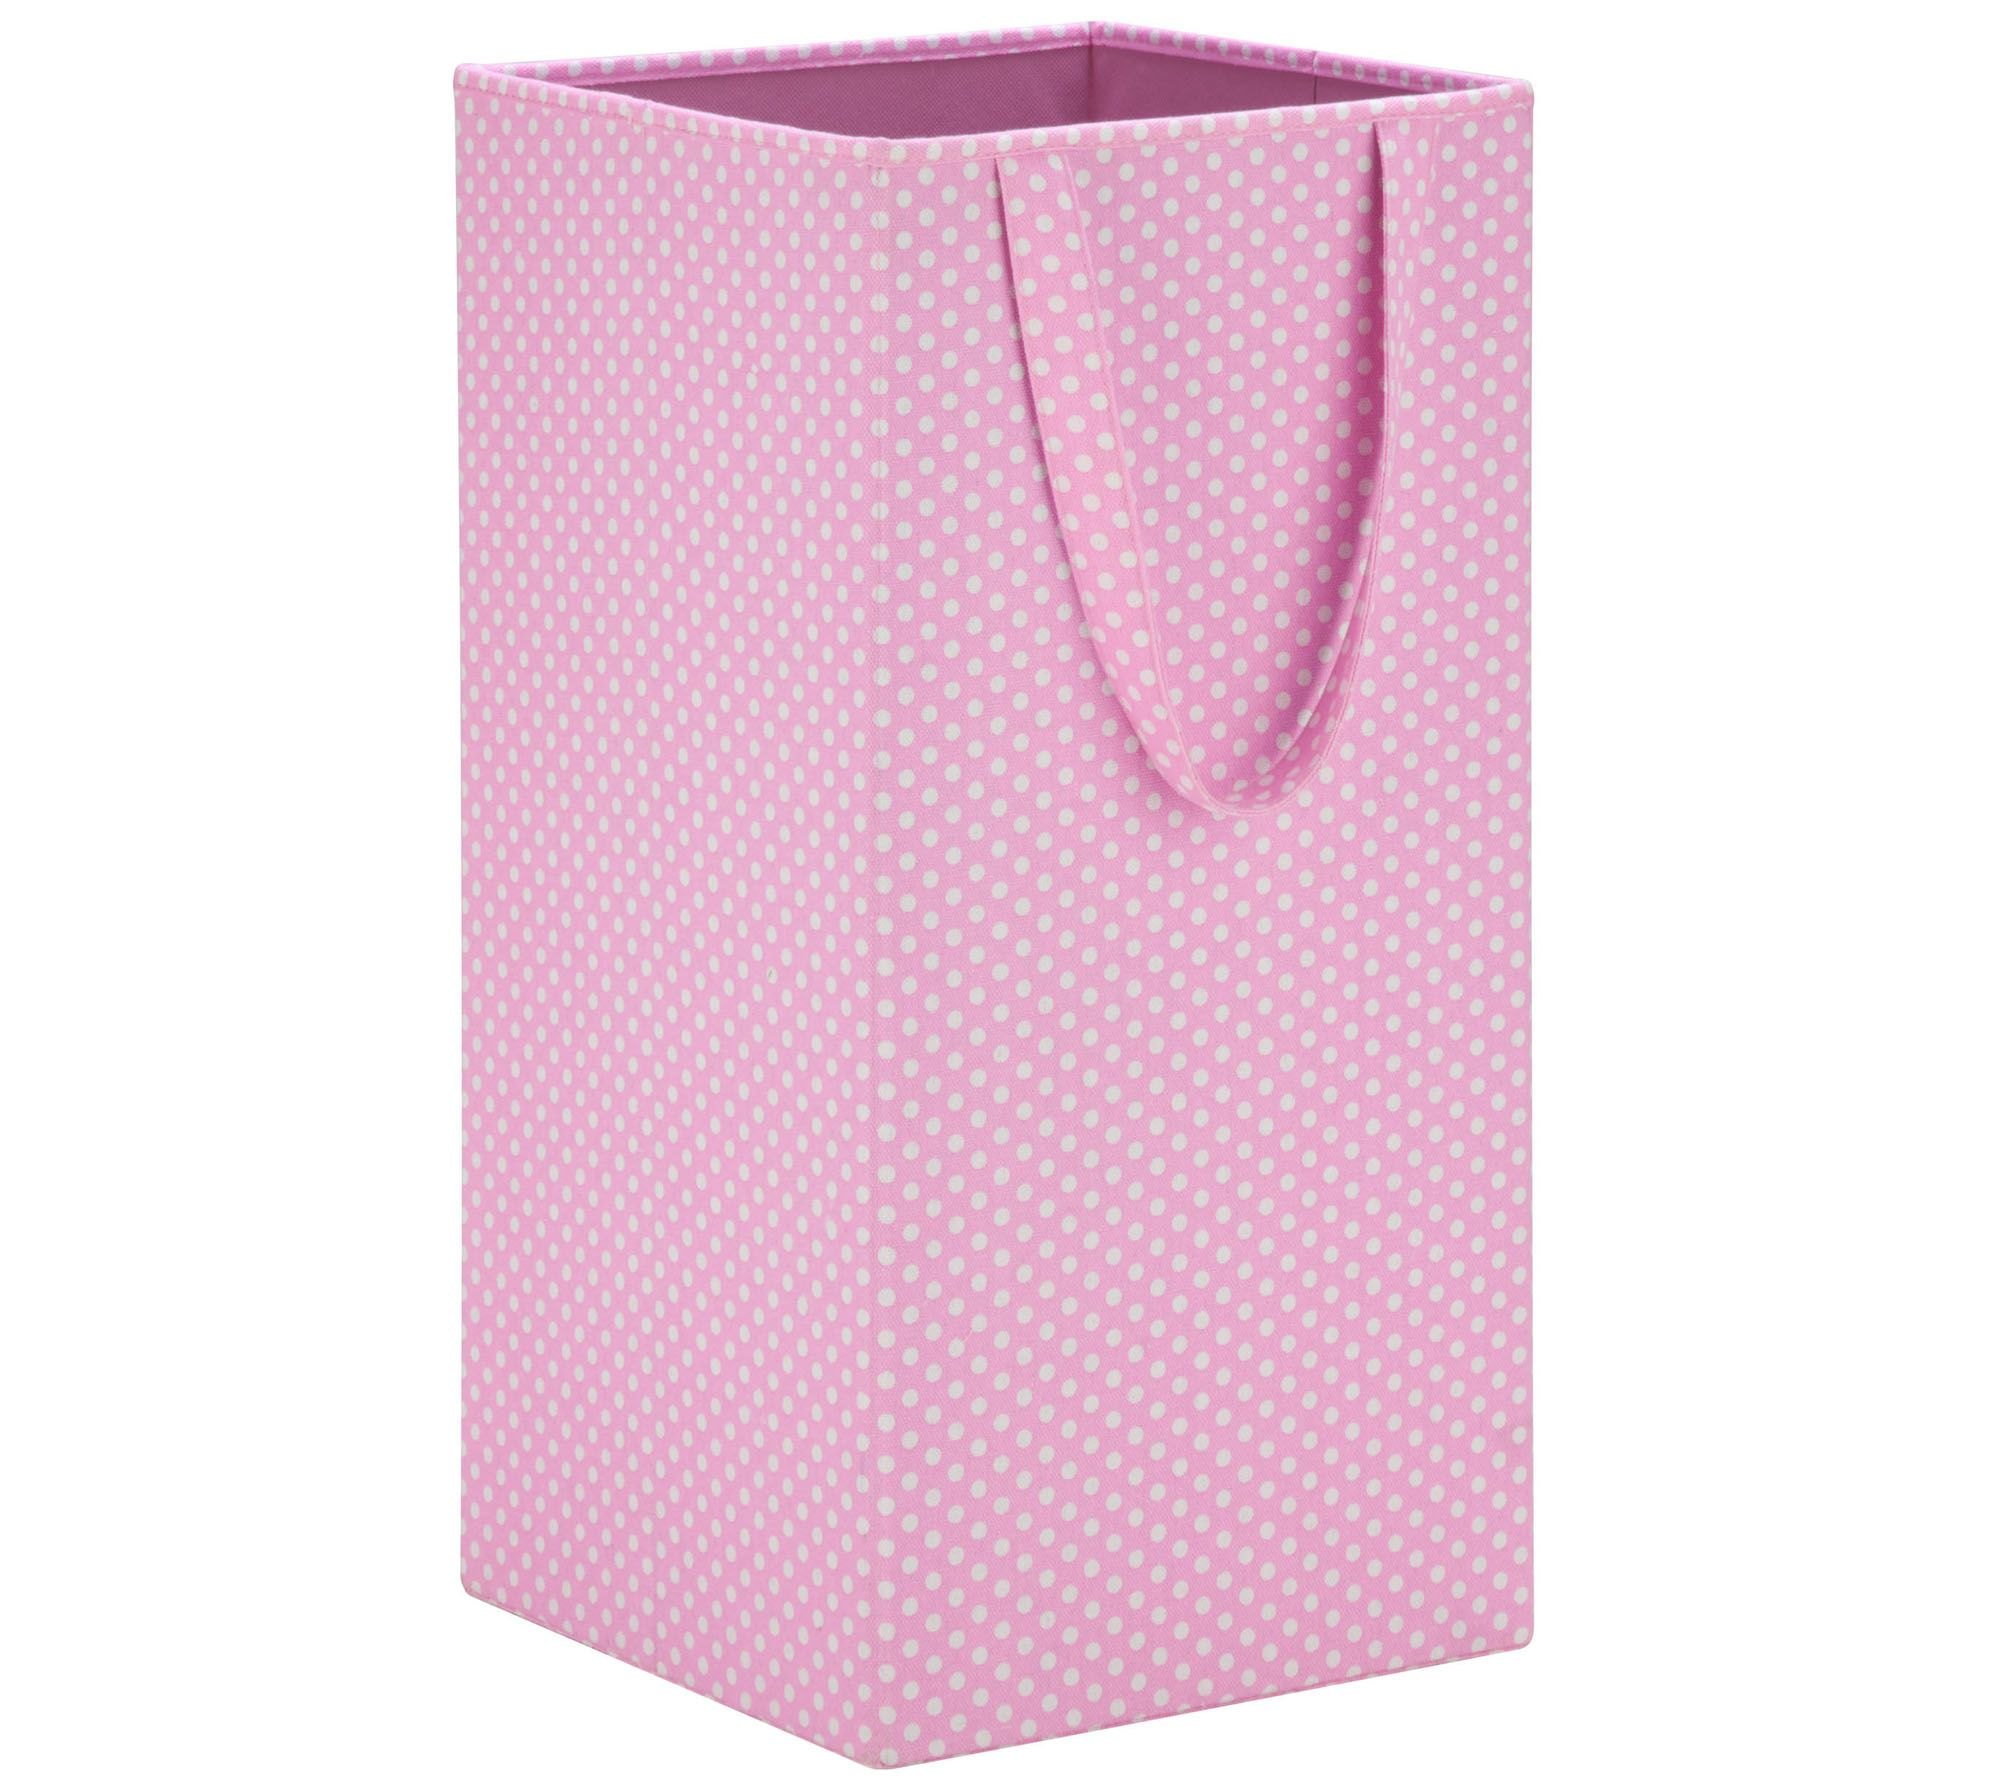 Collapsible Hamper Honey Can Do Pink Rectangular Collapsible Laundry Hamper